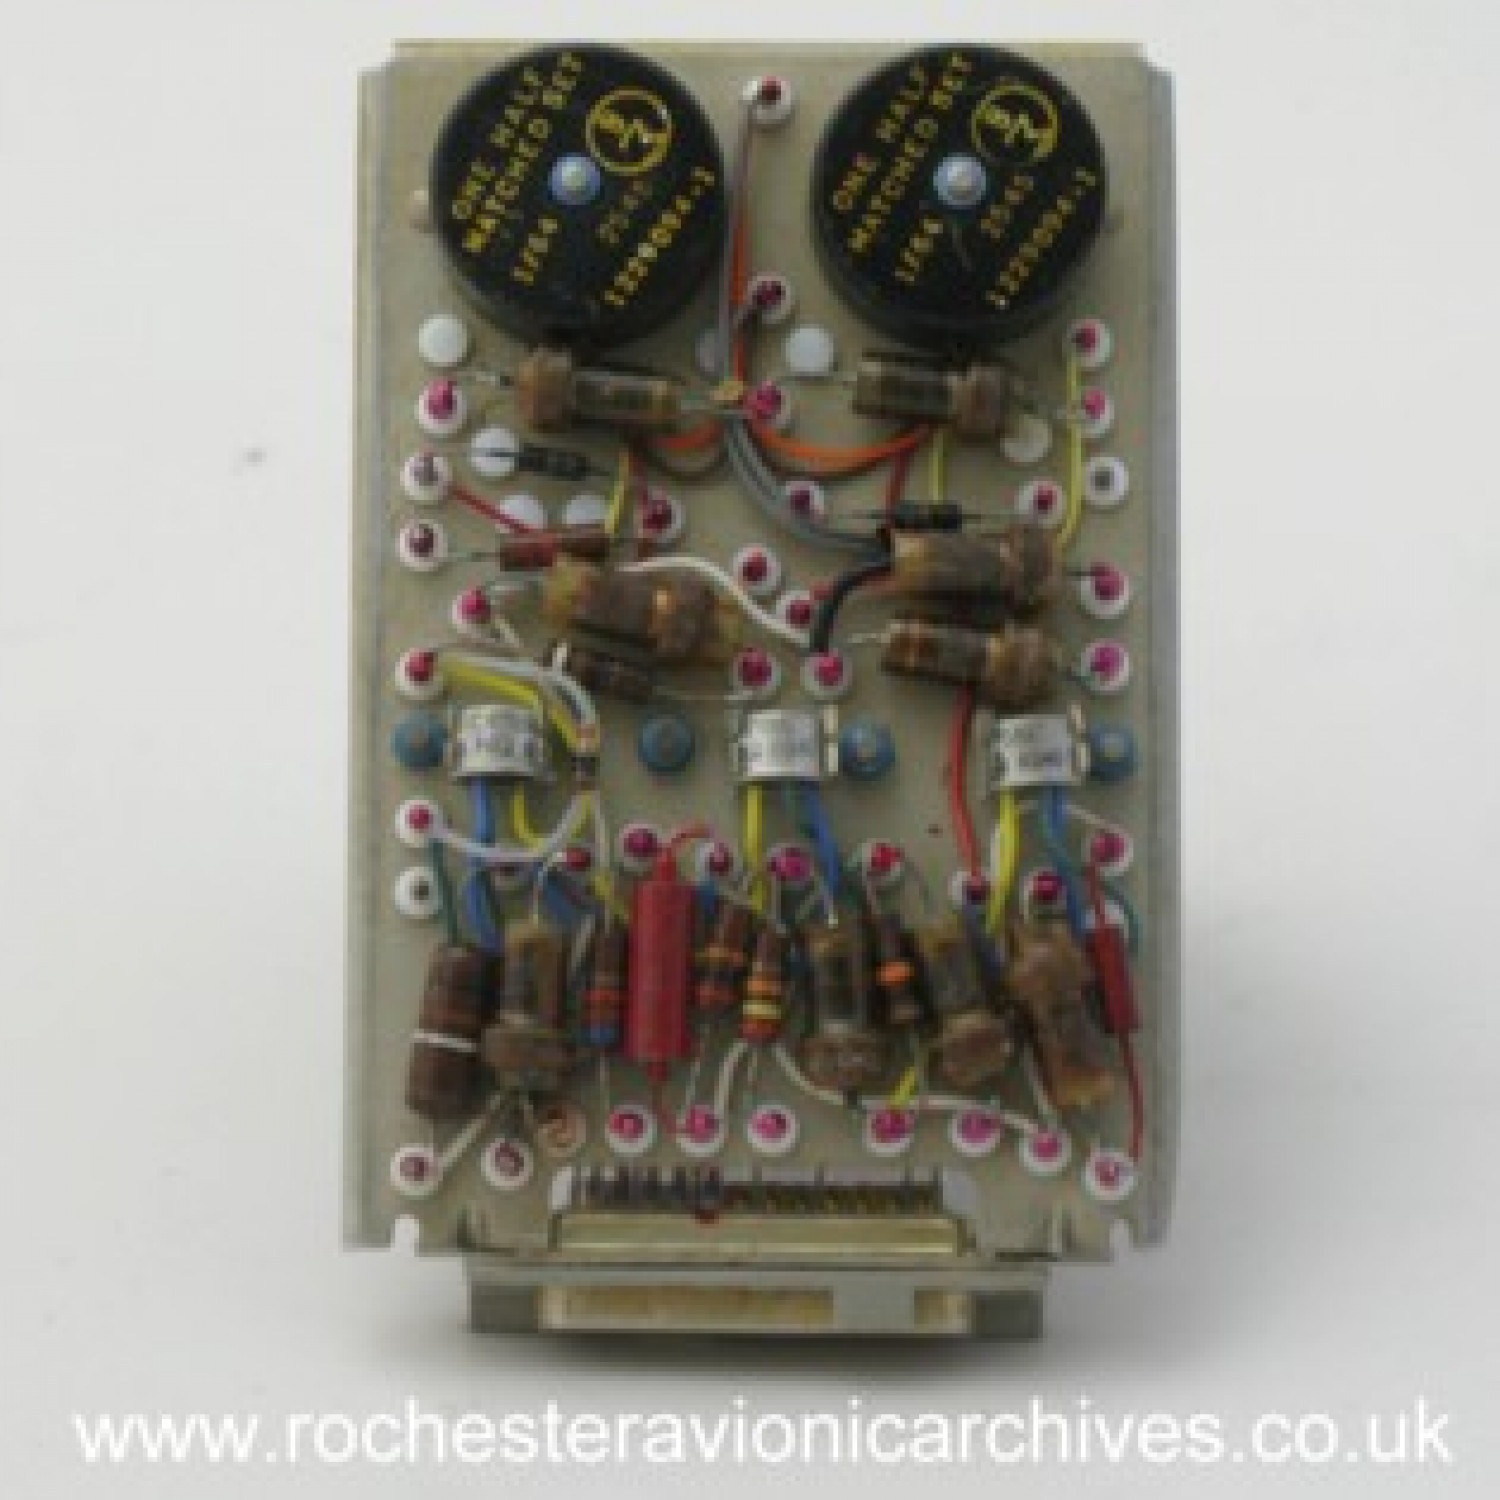 Control Amplifier Circuit Module